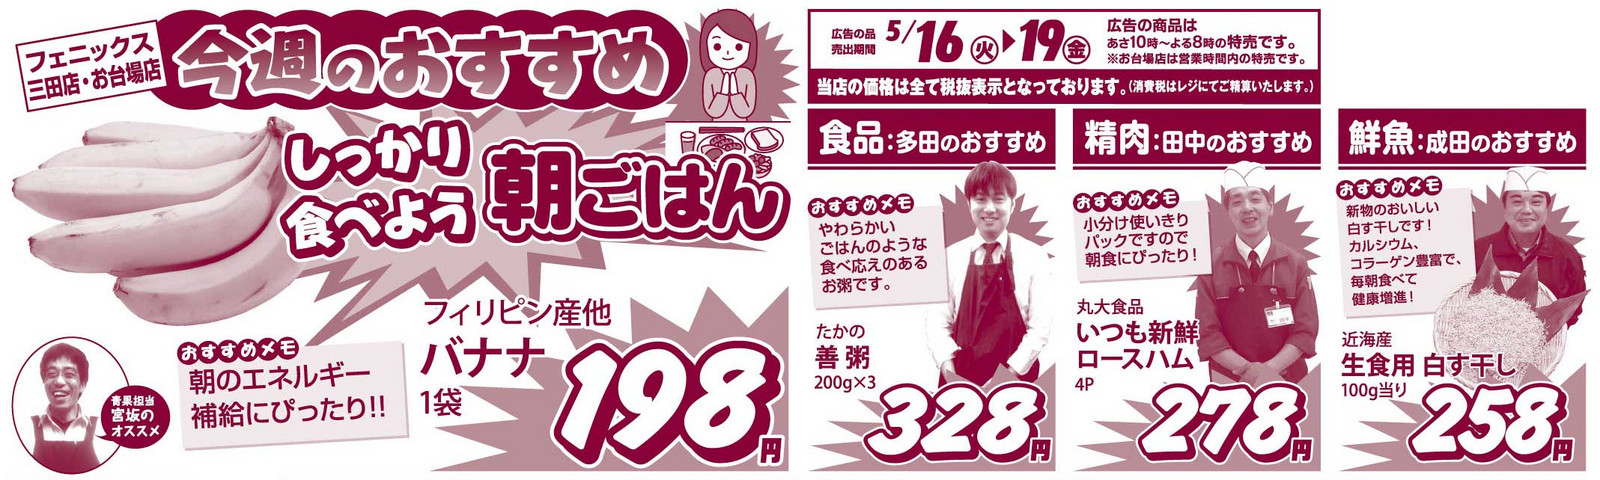 Flyer_20170516_recommend